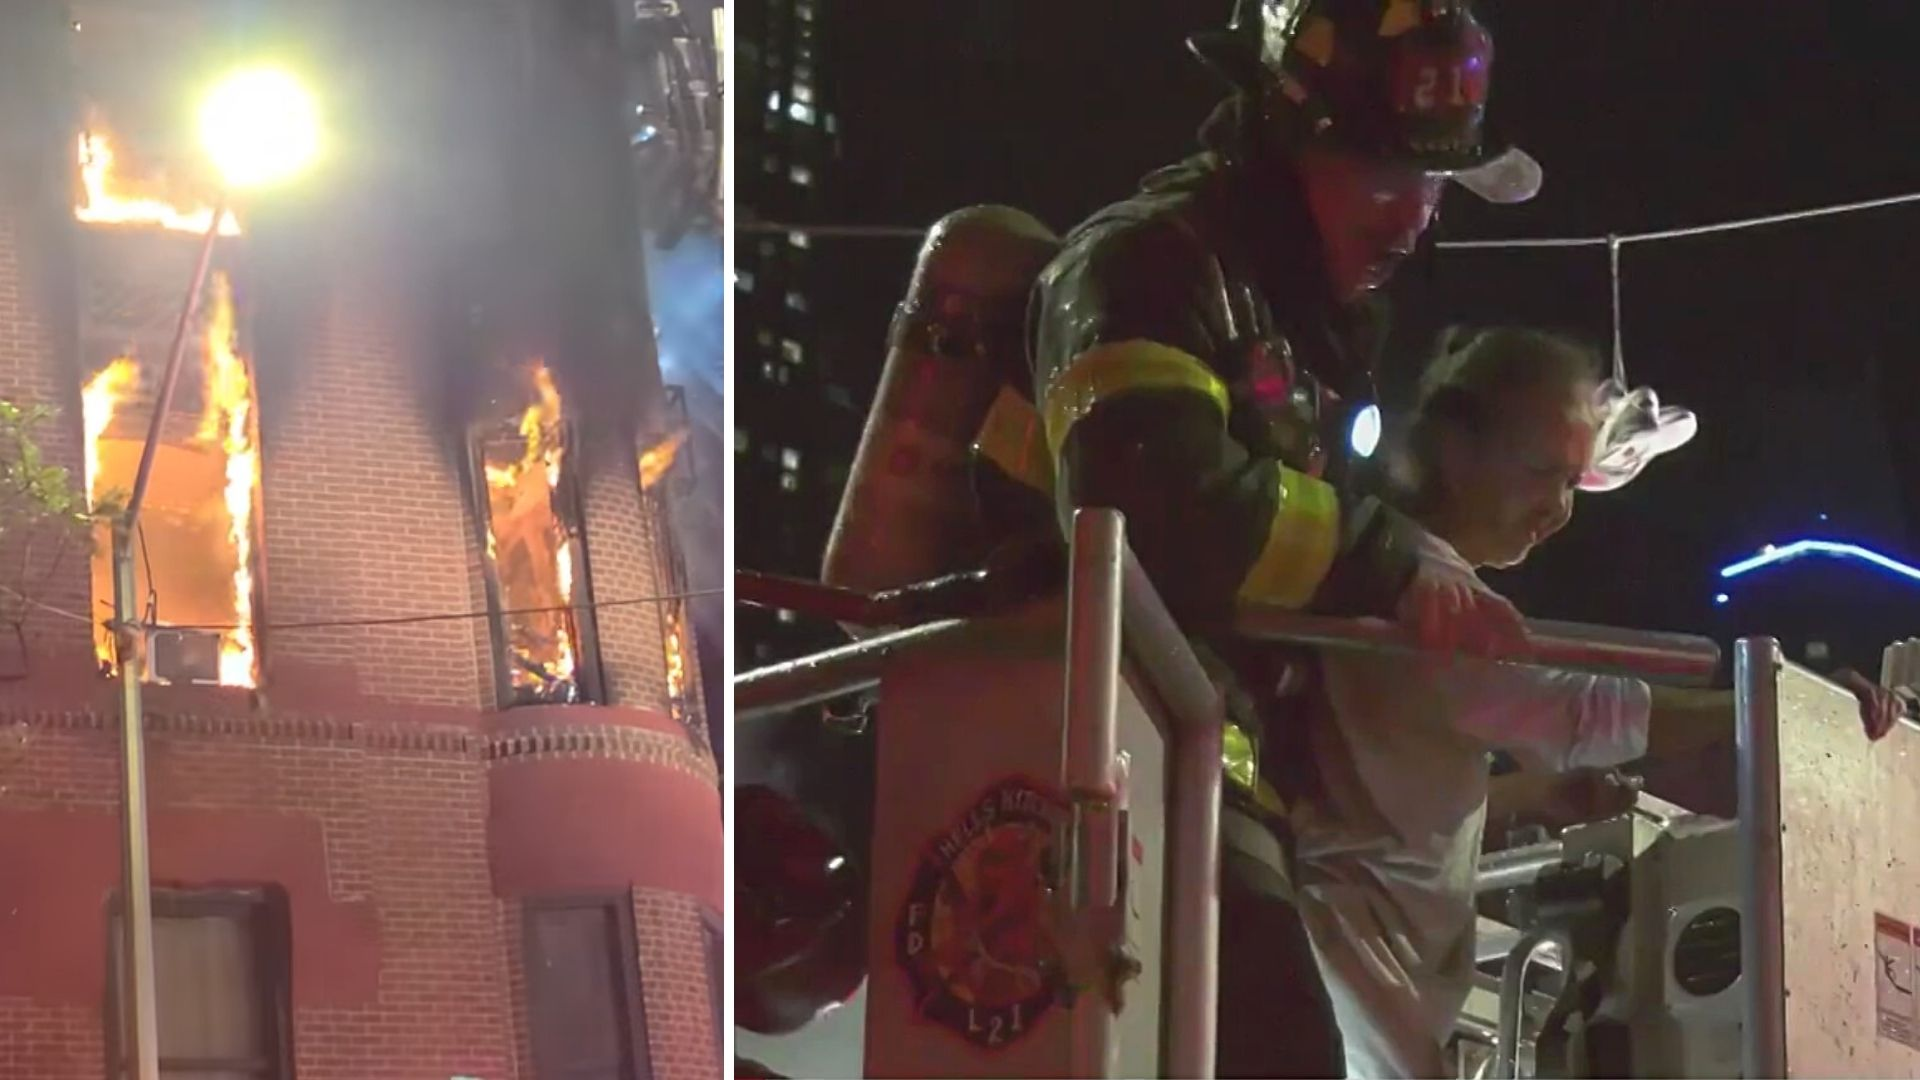 Hell's Kitchen apartment fire